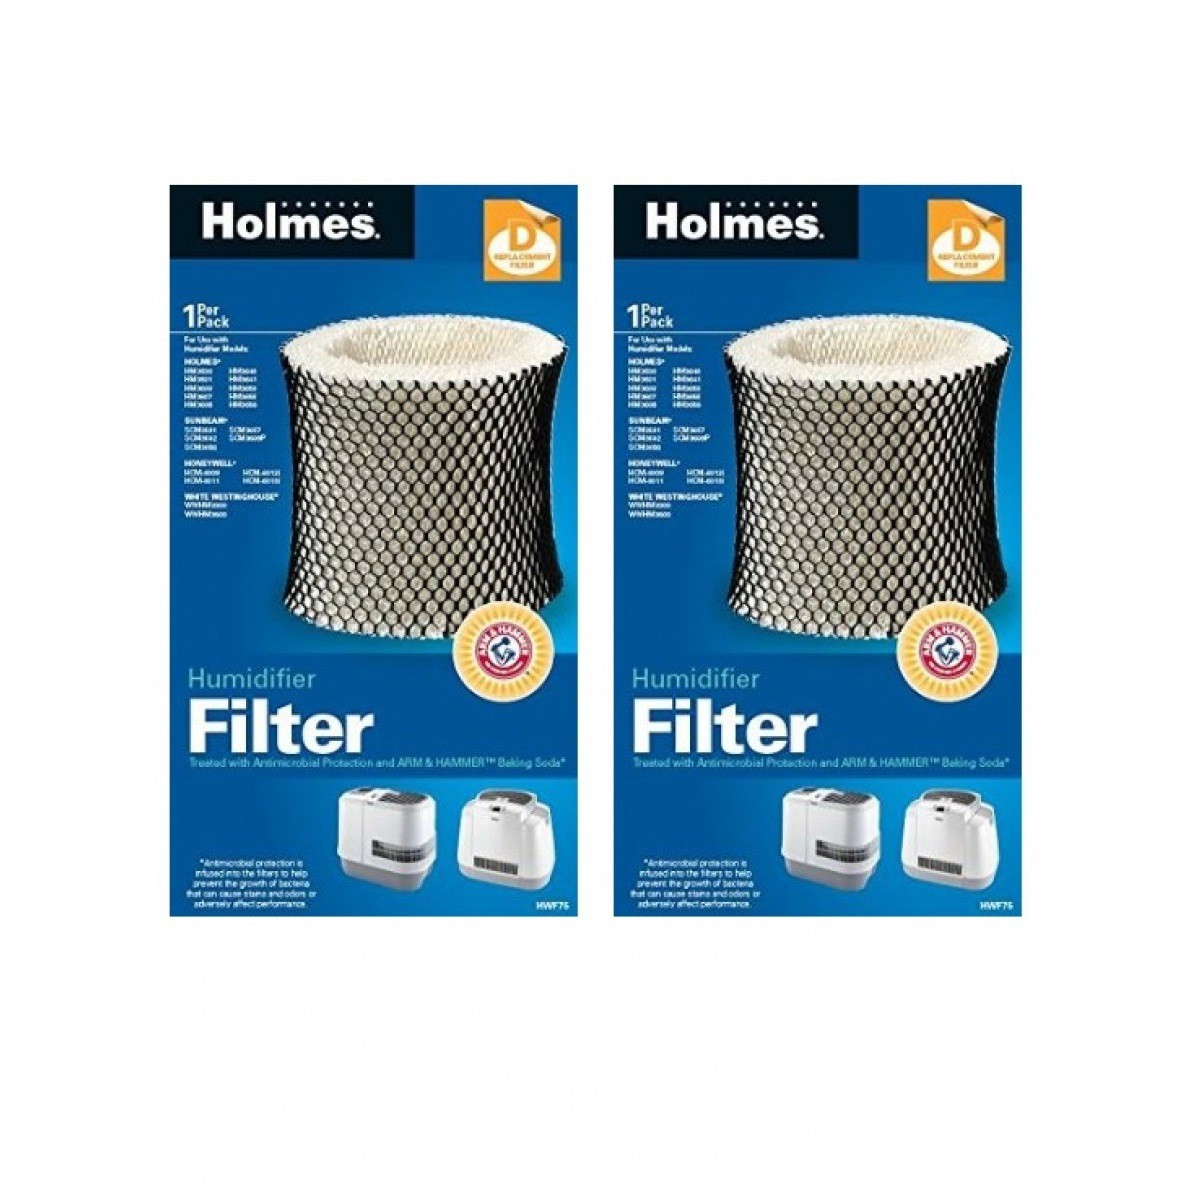 > Humidifier Filters > Holmes HWF75PDQ U Humidifier Wick Filter  #015190